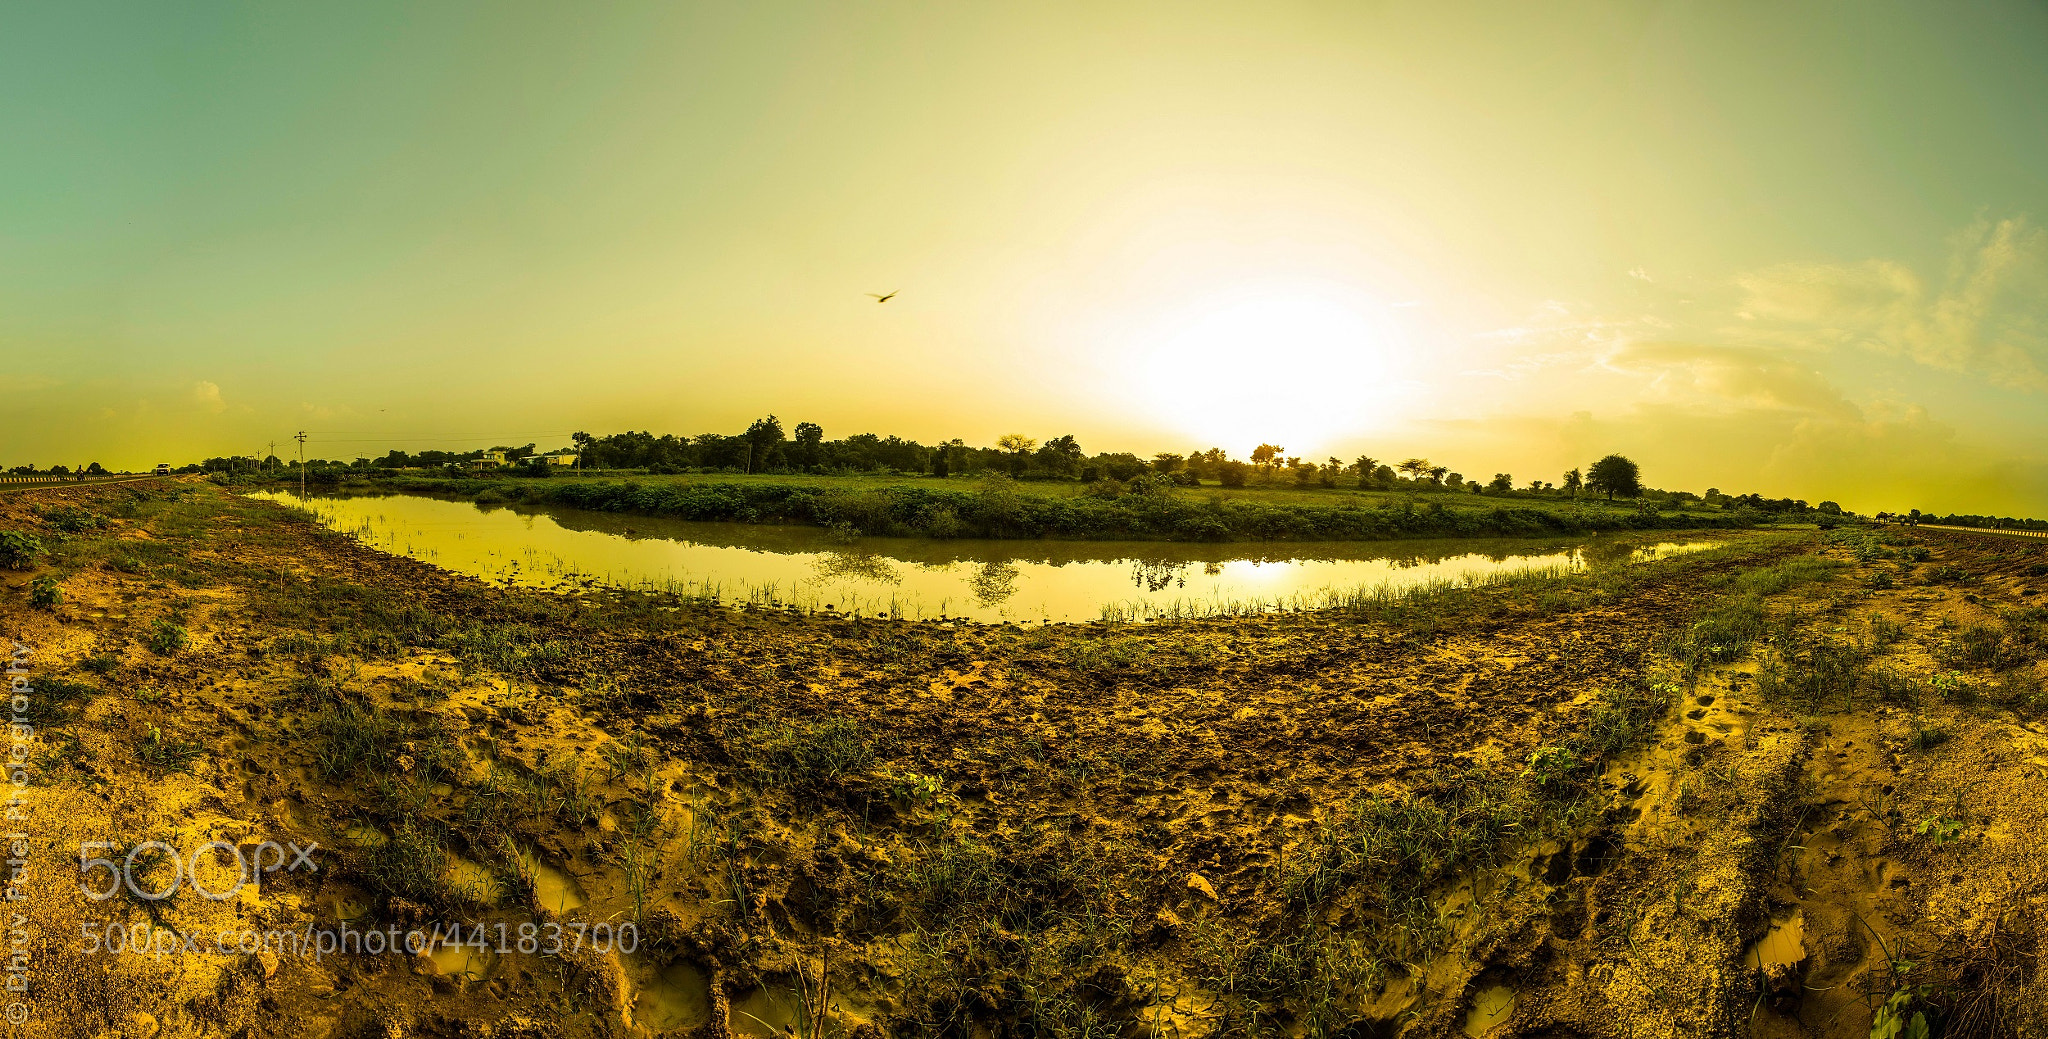 Photograph Roadside Nature by Dhruv Patel on 500px